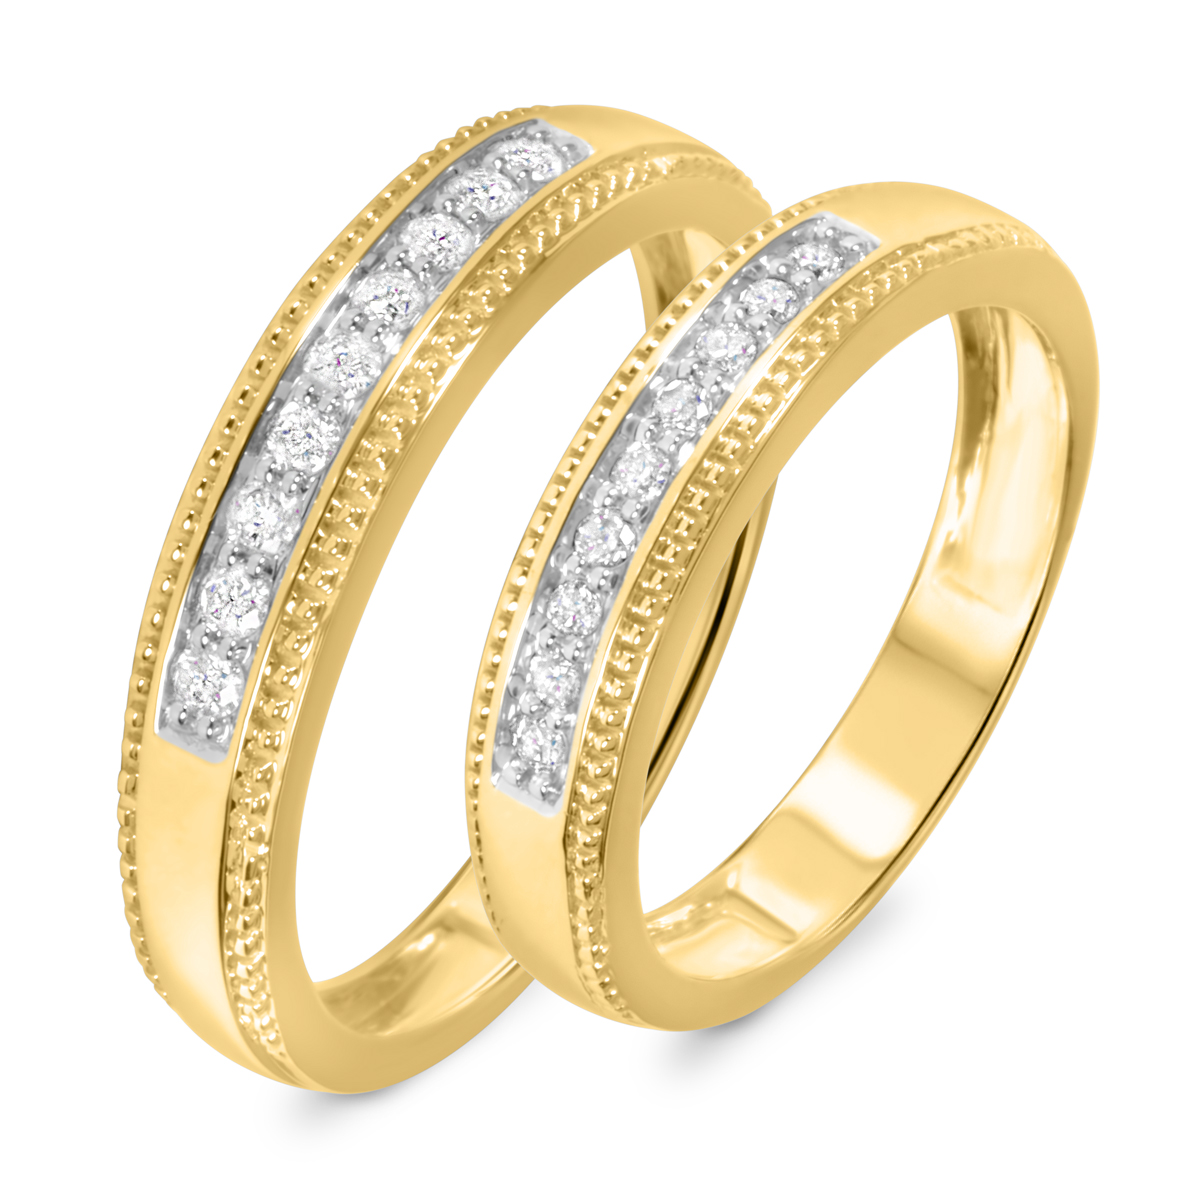 1/3 CT. T.W. Round Cut Diamond His And Hers Wedding Band Set 14K Yellow Gold-